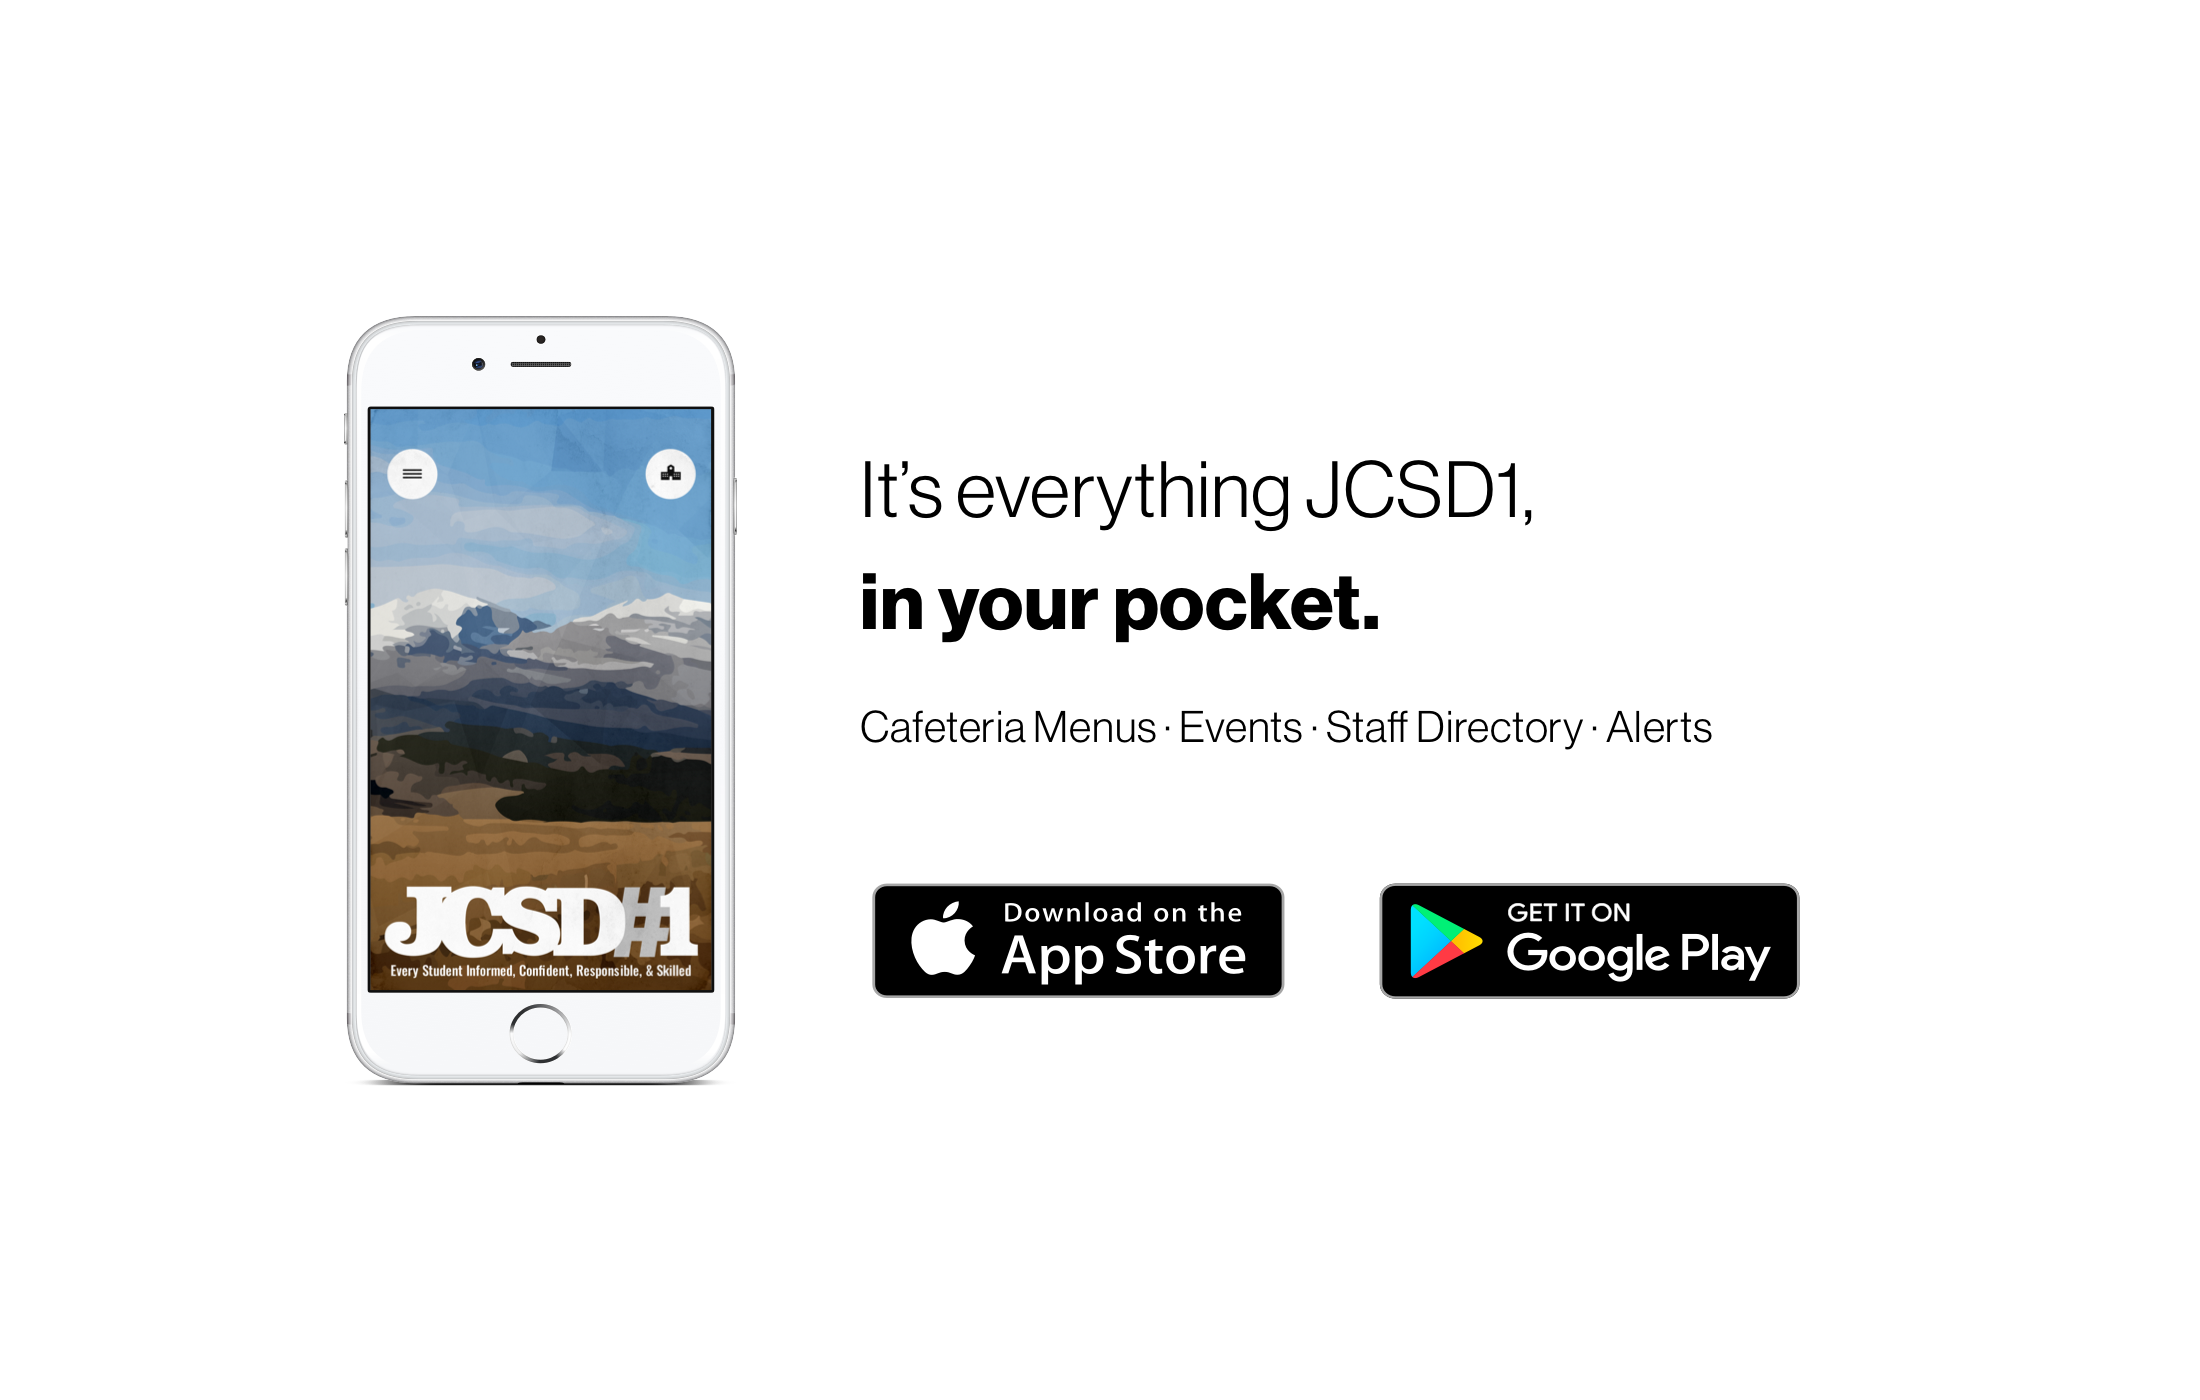 Download the New JCSD1 App